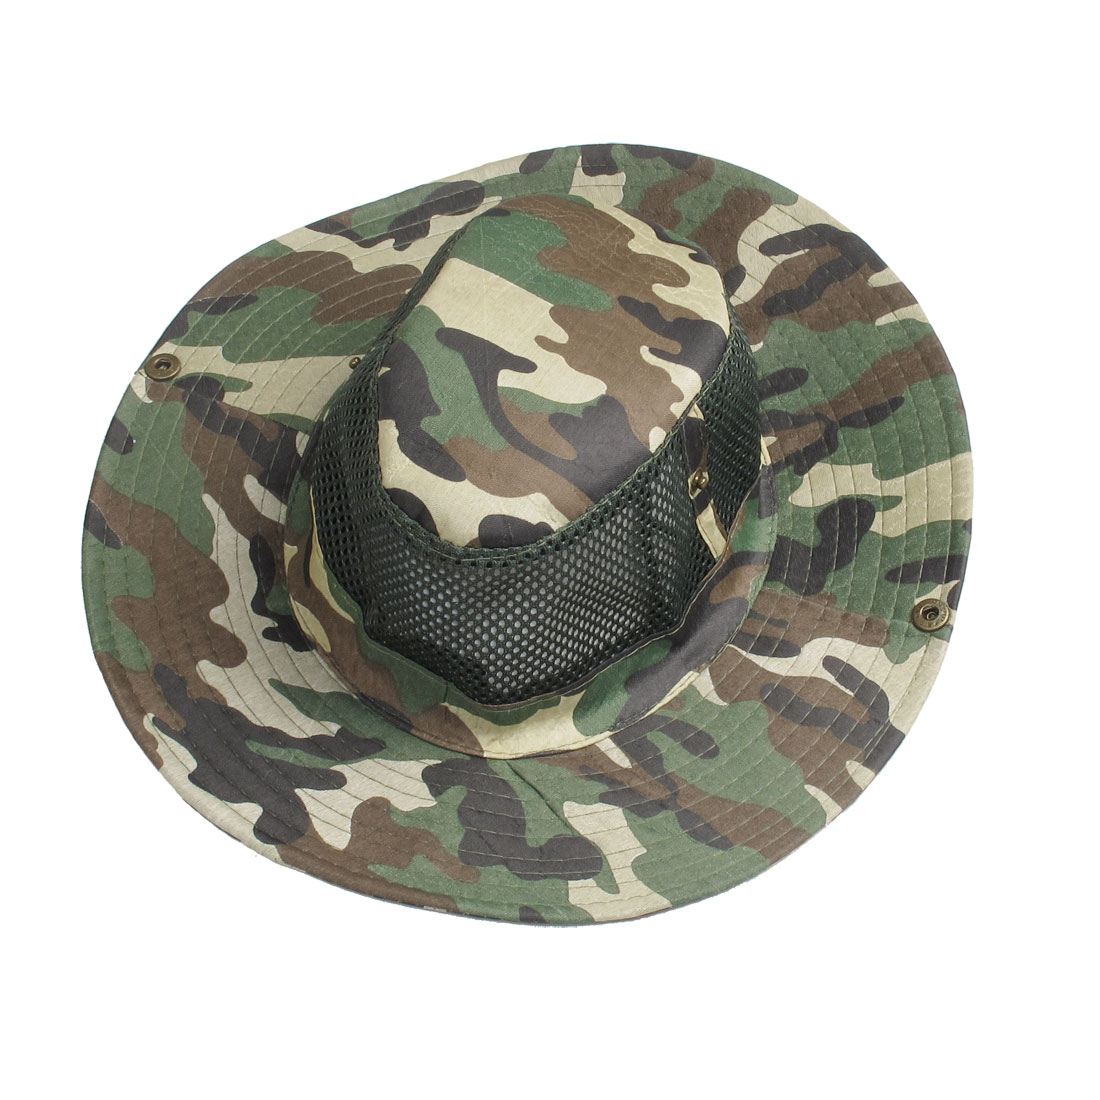 Man Outdoor Black Strap Army Green Hole Style Cap Trilby Hat